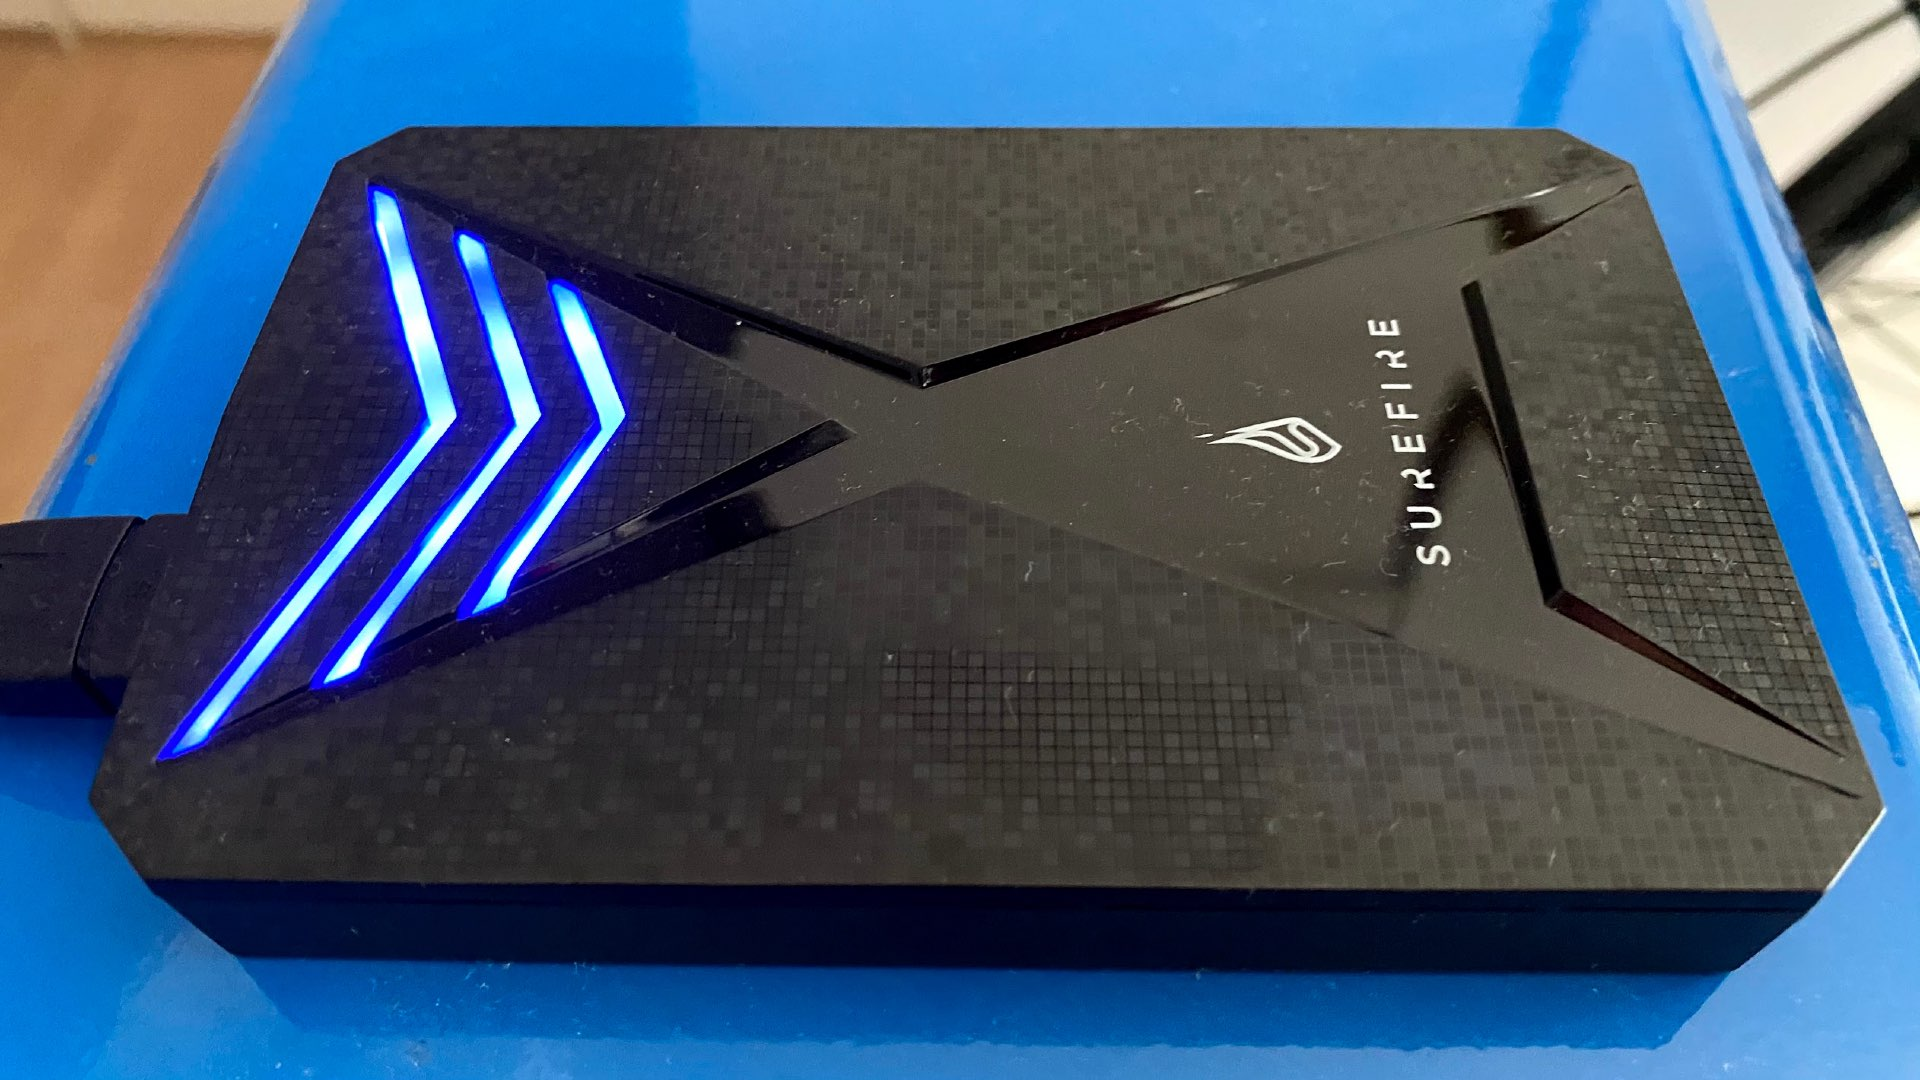 Surefire GX3 external gaming SSD review – storage with style